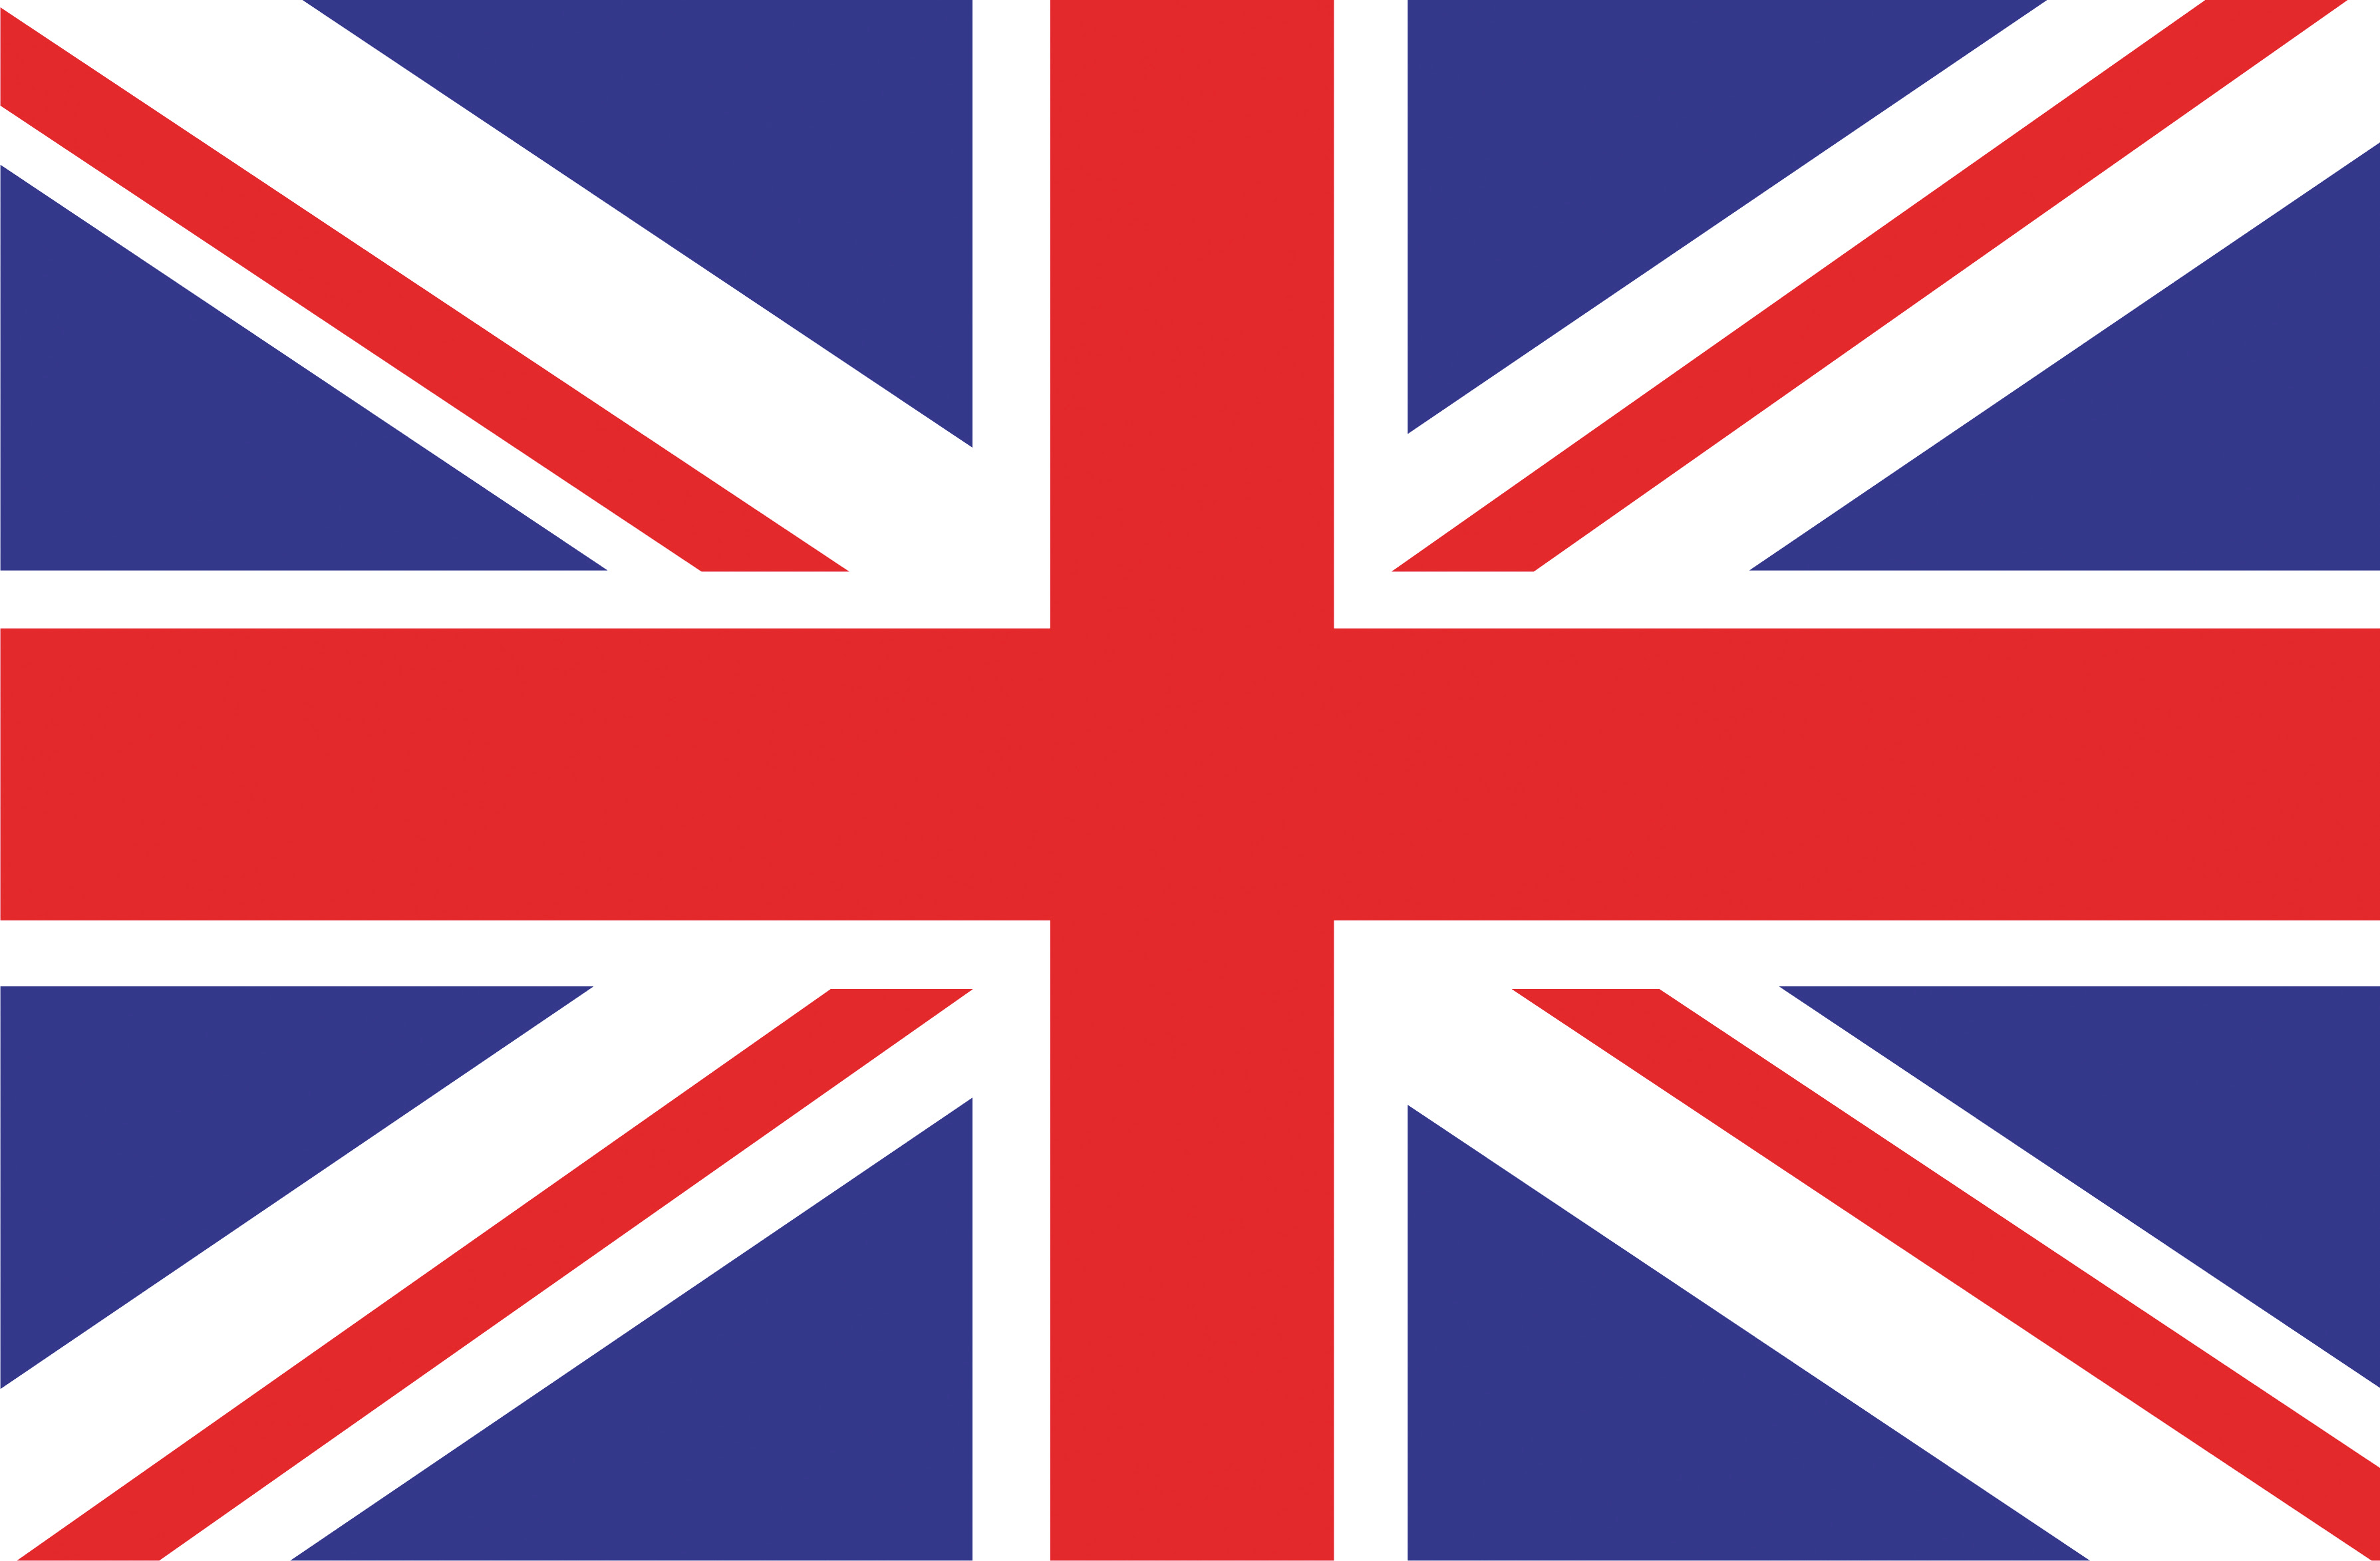 UK flag - Inpatient Alcohol Rehab Program